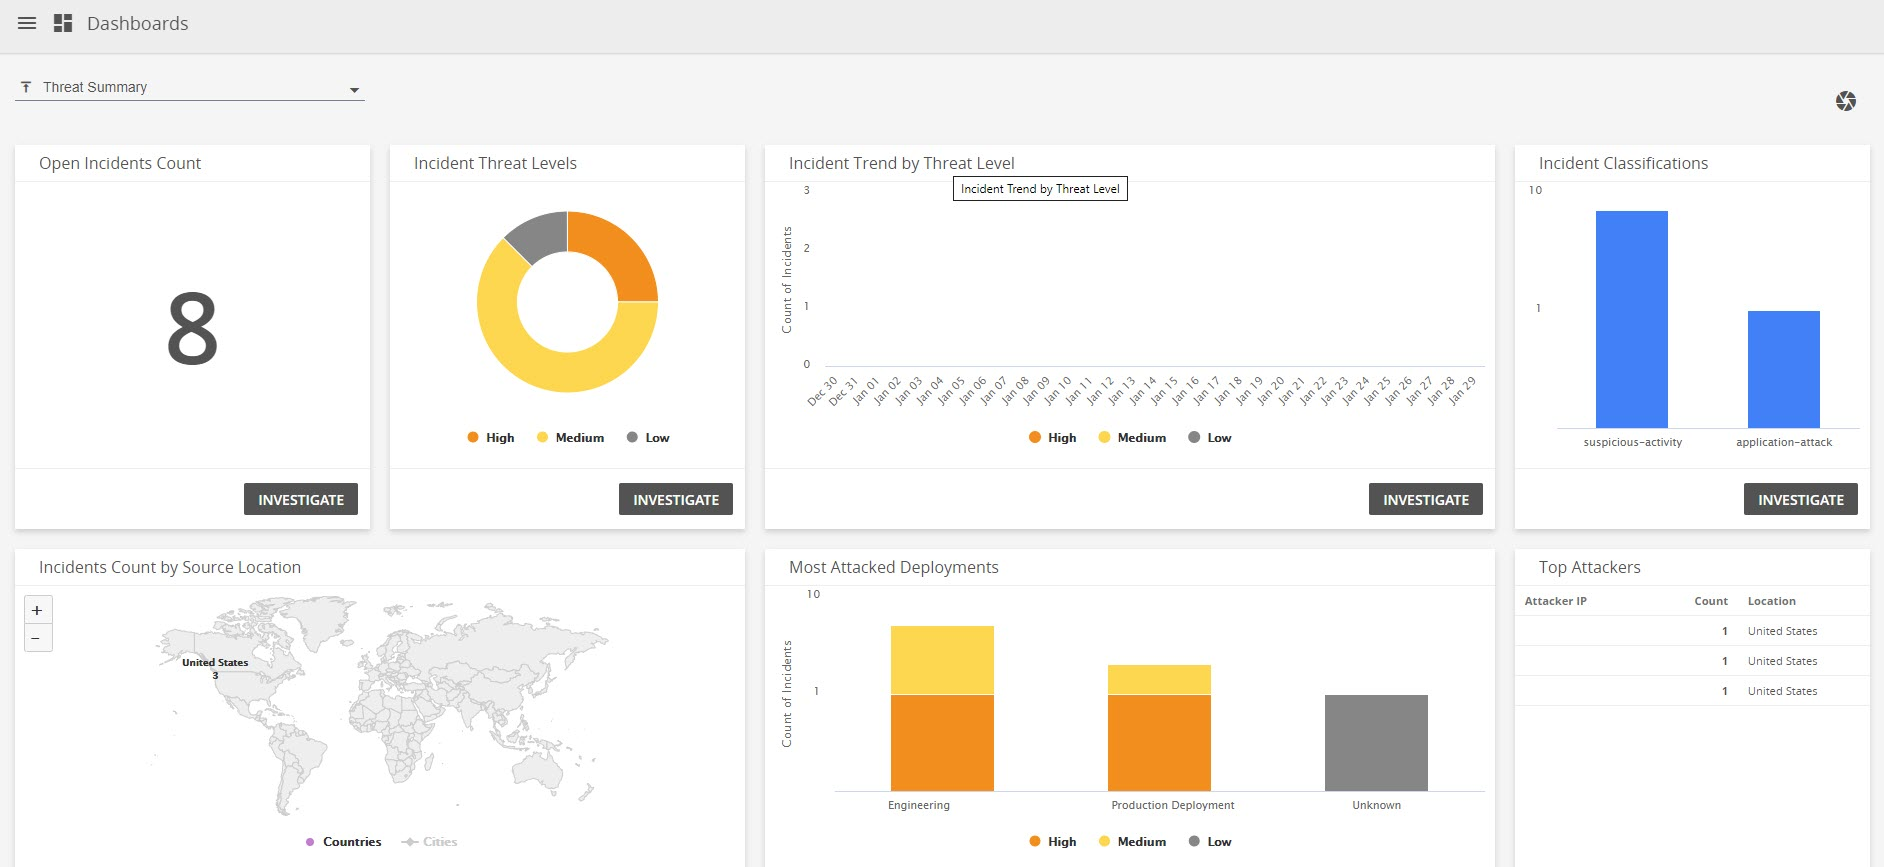 console_overview_threat_summary.jpg